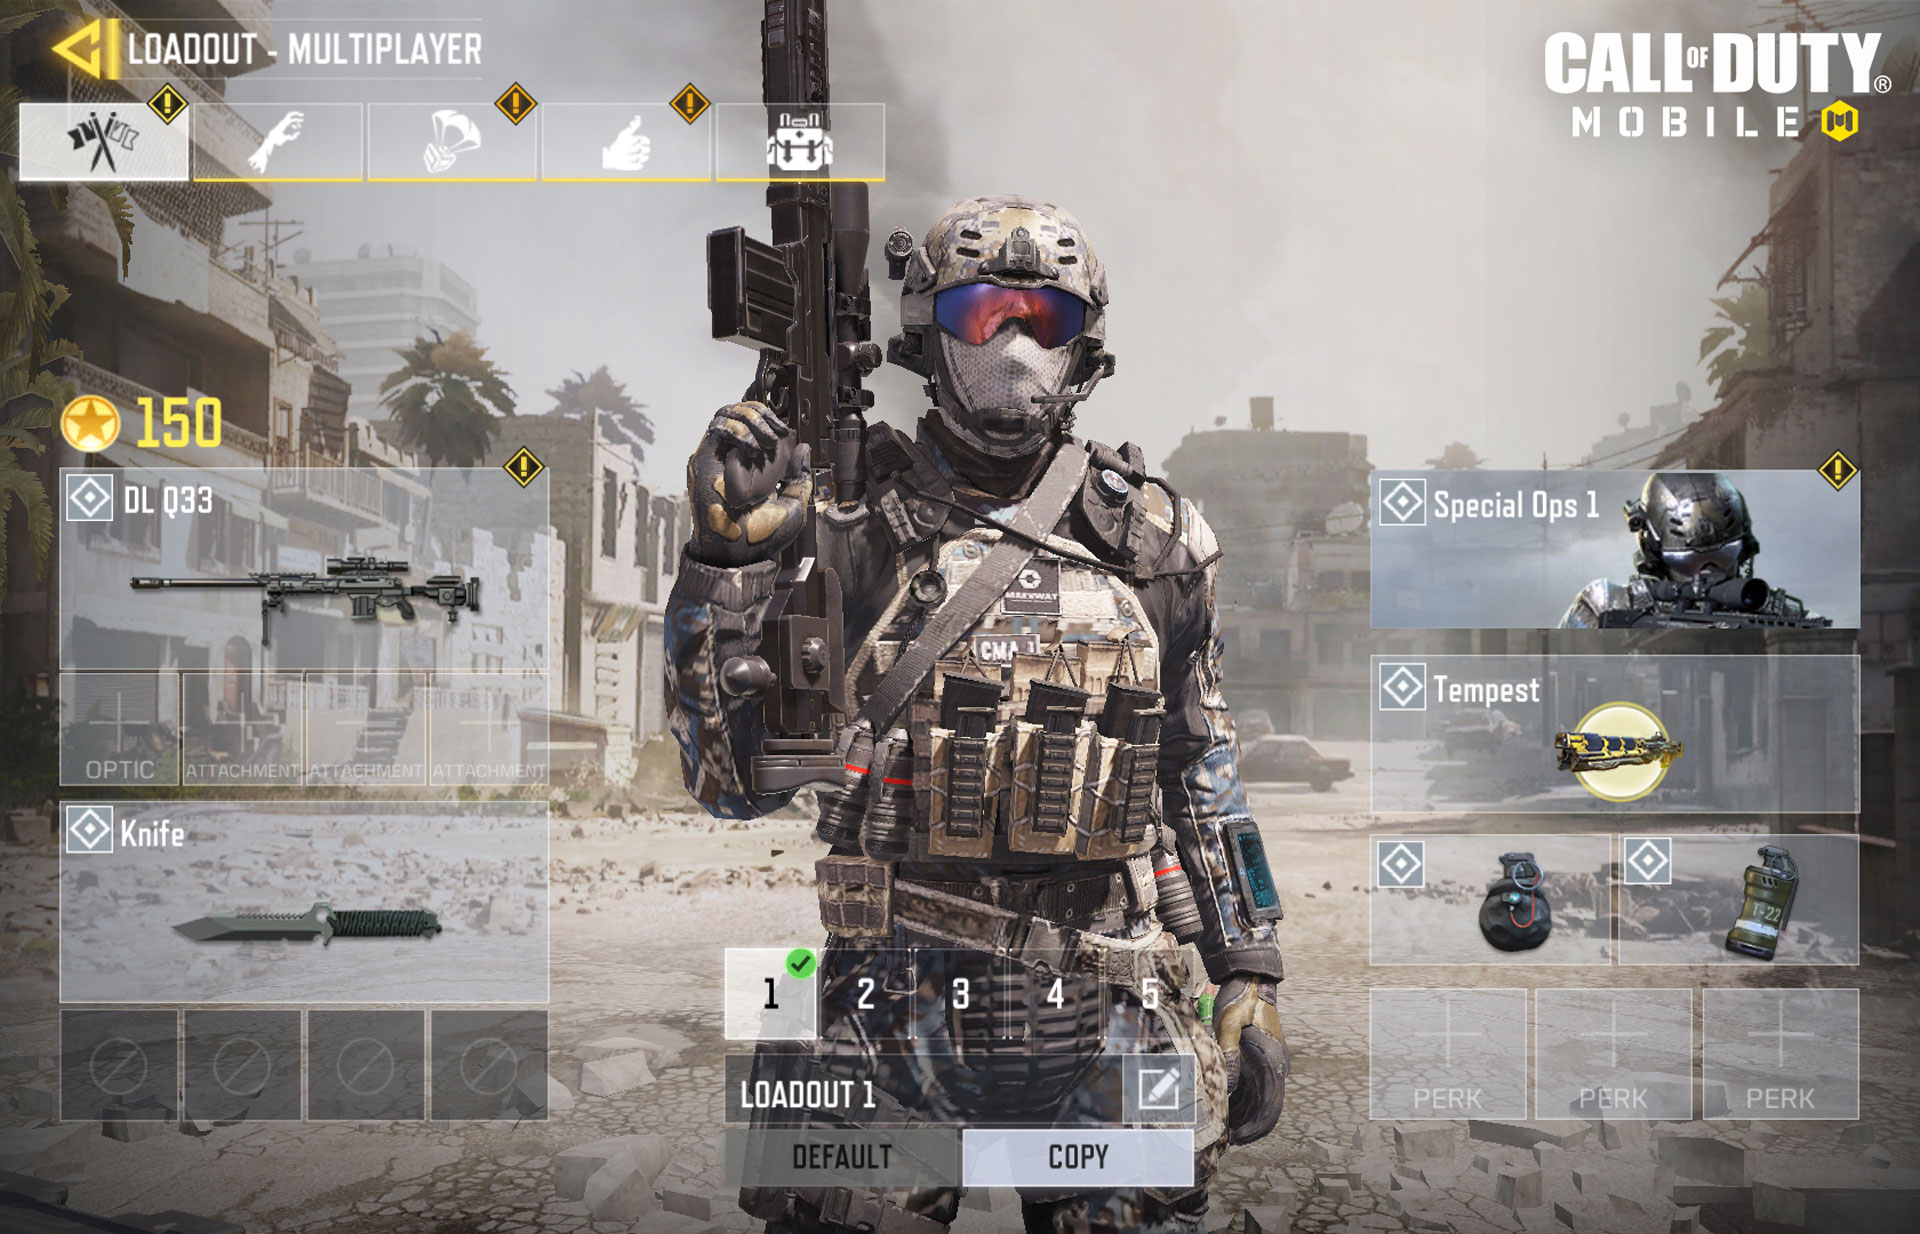 The Loadout is where you gear up for battle prior to a match